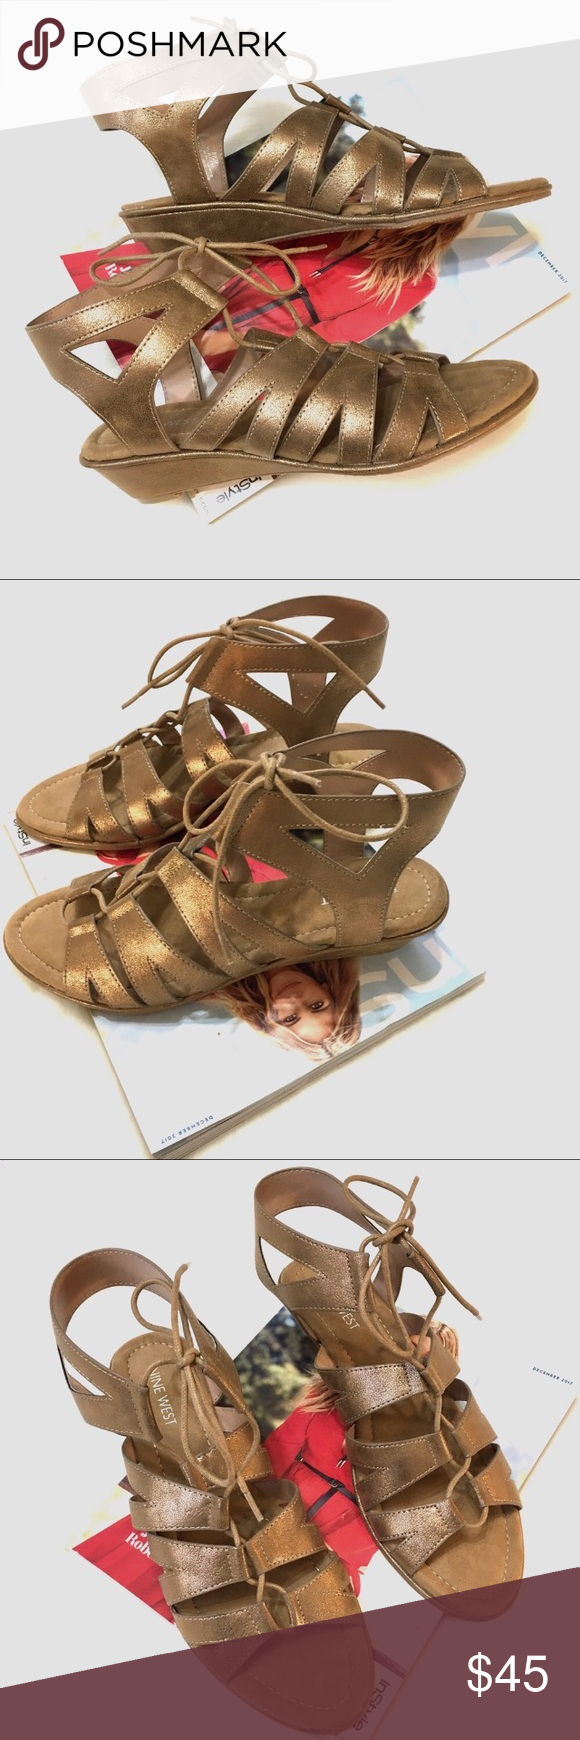 b1488e02e NINE WEST LACE-UP METALLIC GOLD WEDGES SANDALS 8.5 BRAND NEW NINE WEST  SANDALS